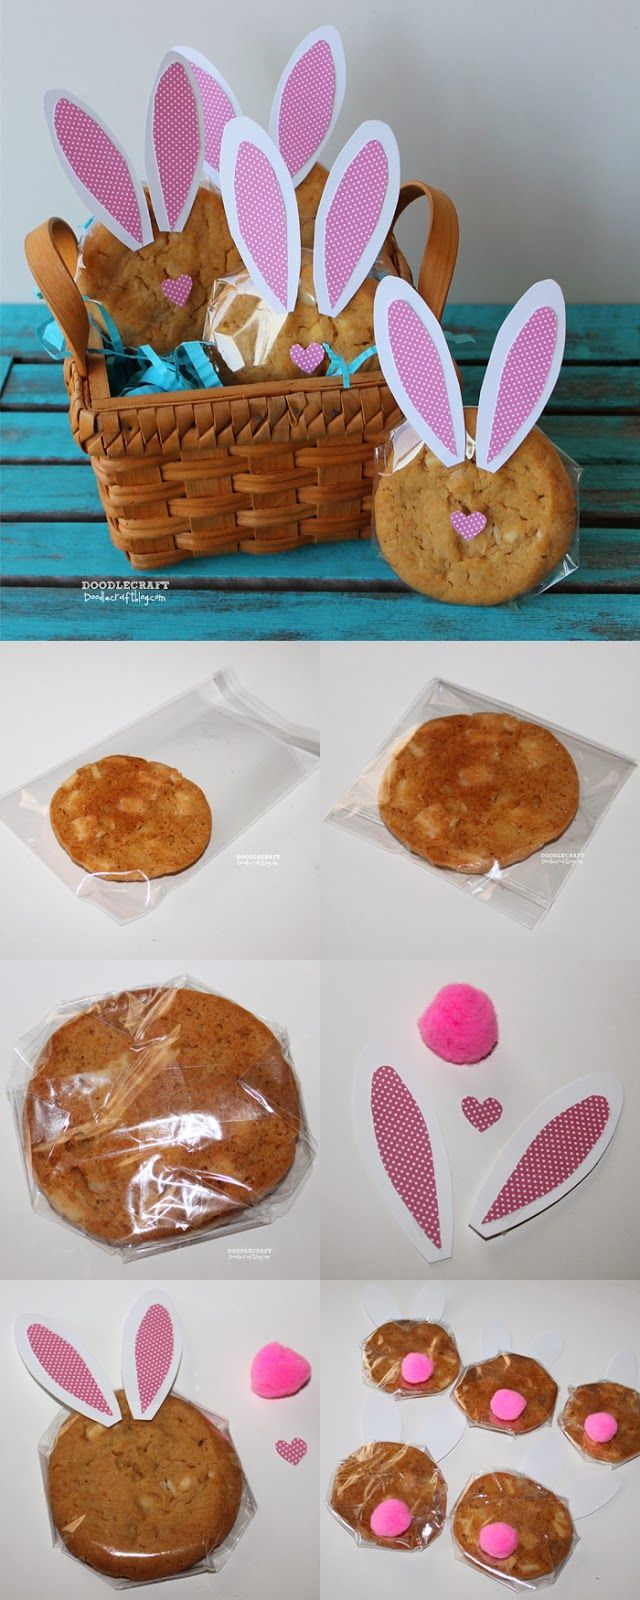 Best 25 easter gift ideas on pinterest bunny bags diy gift cookies bunny ear cutouts a basket cellophane and a fuzzy tail and youre all set for easter thanks doodlecraft negle Choice Image